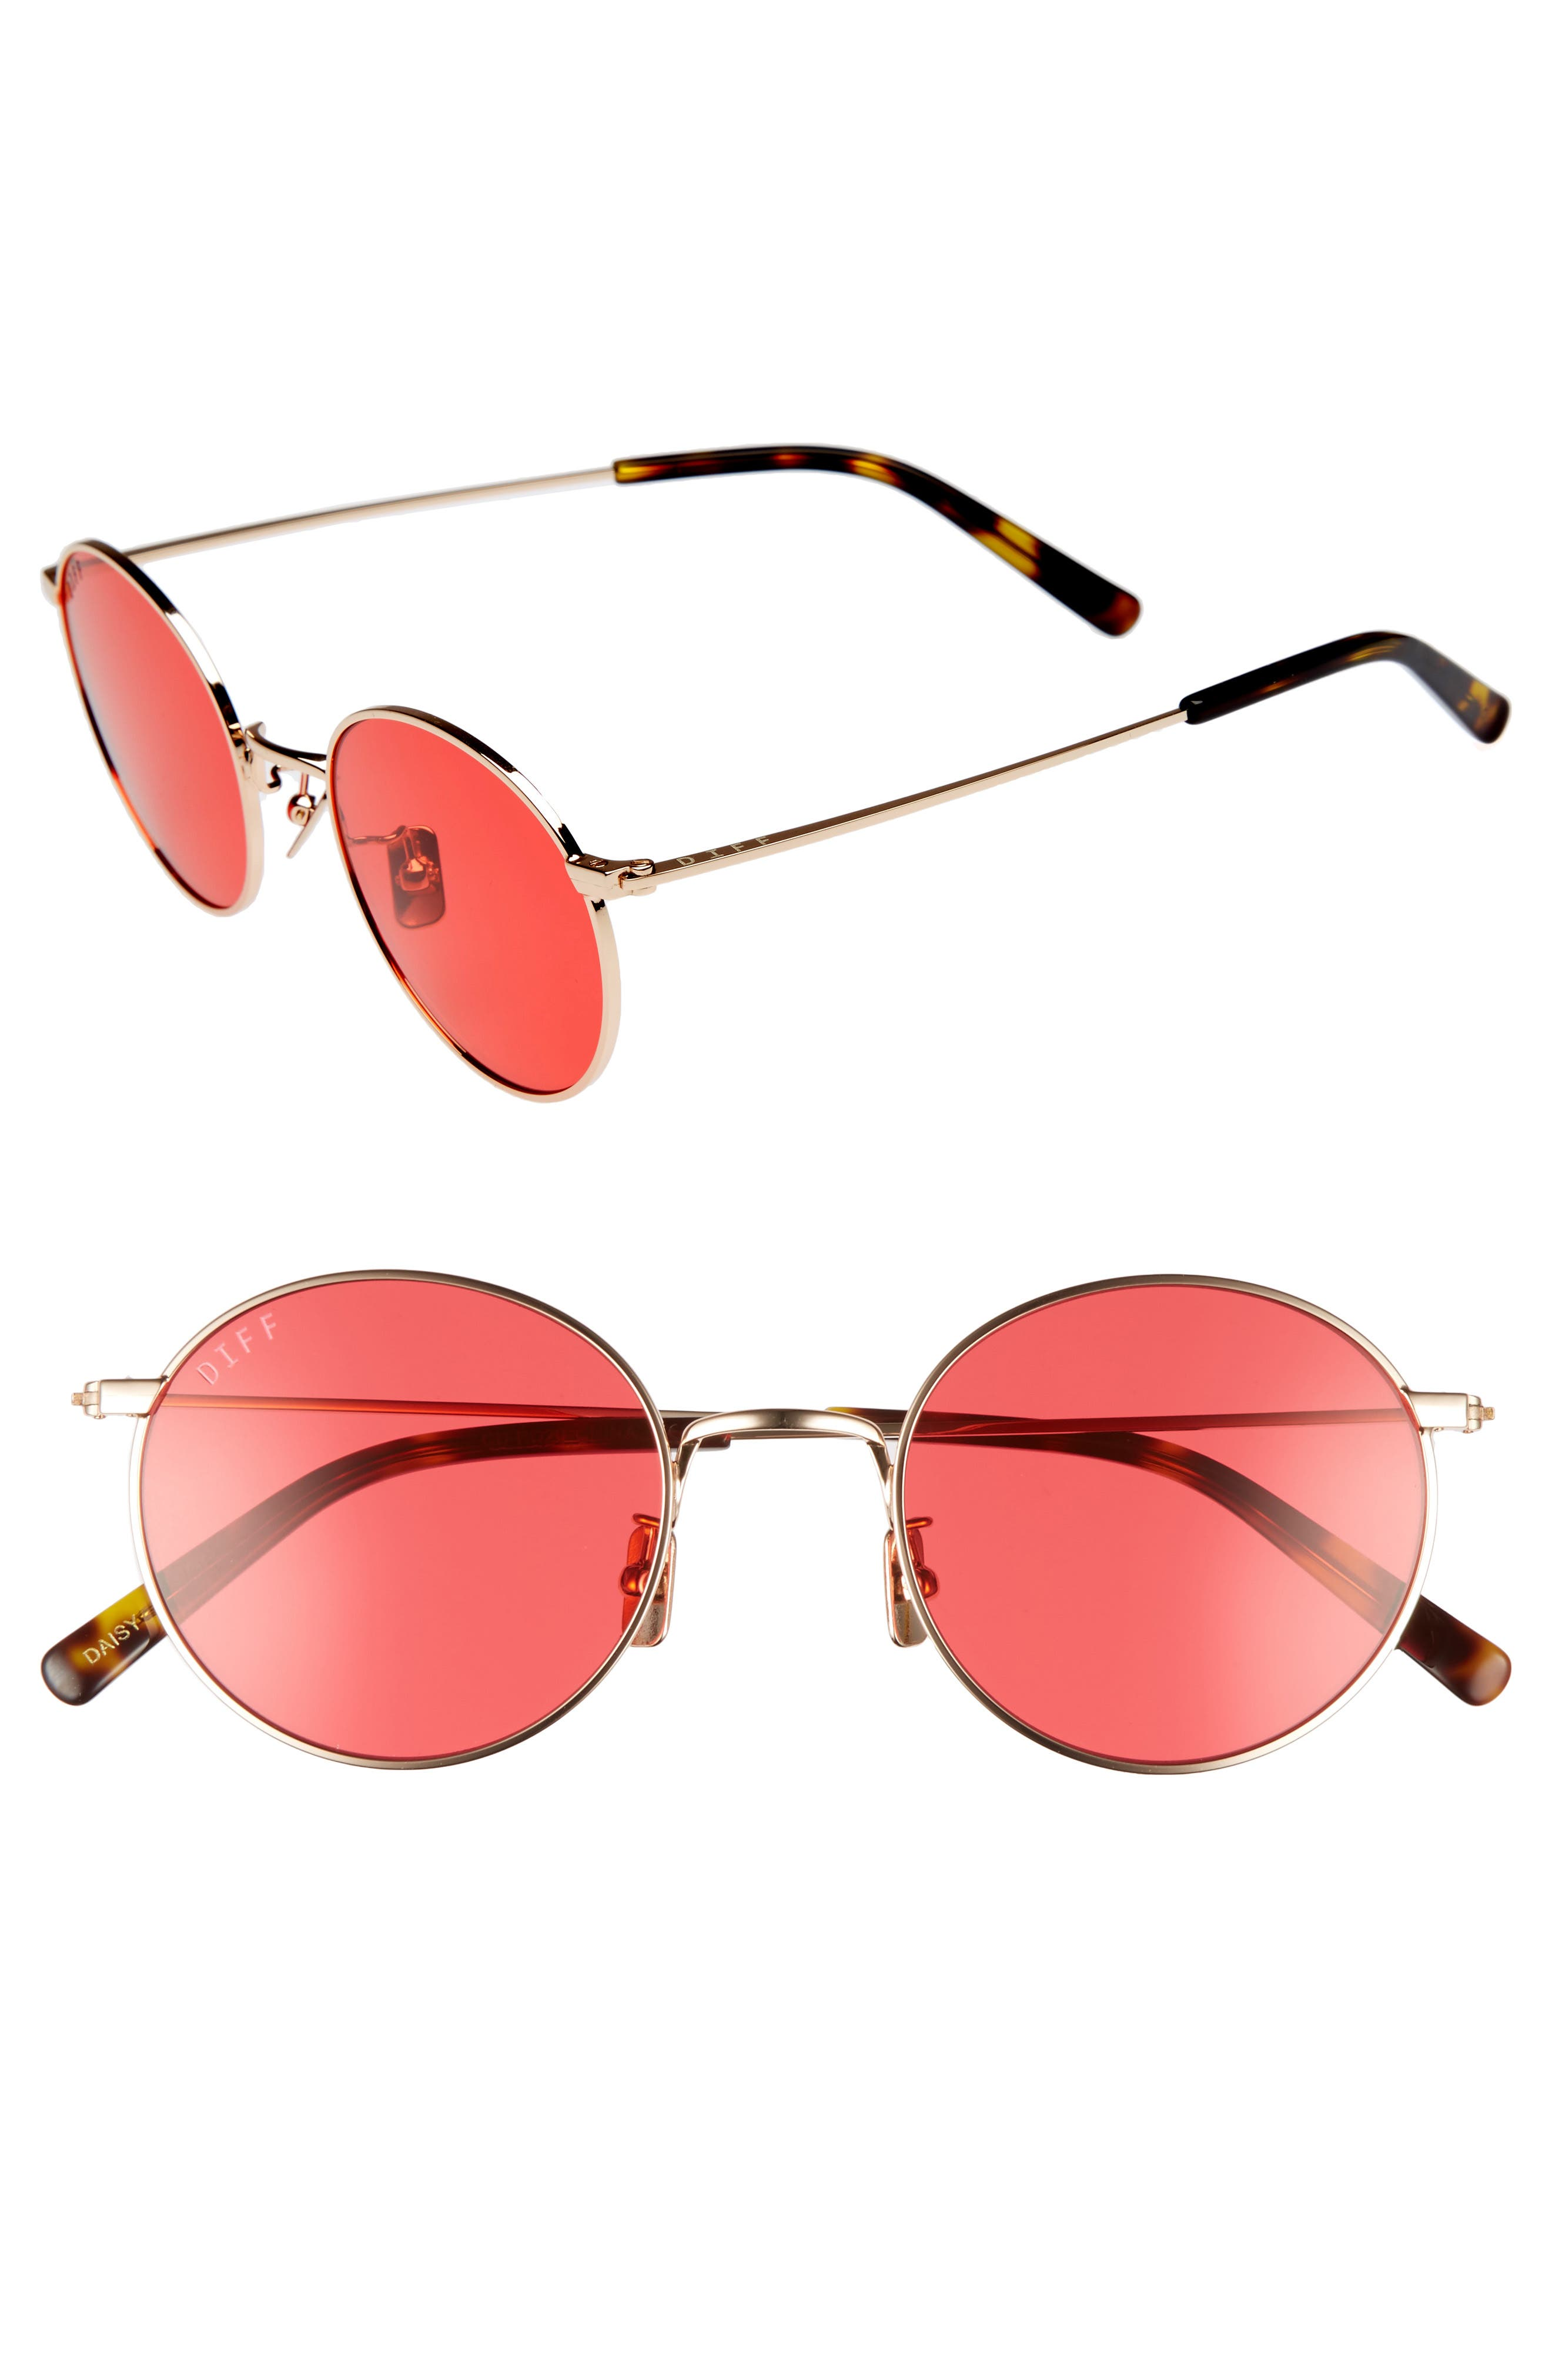 Daisy 51mm Round Sunglasses,                         Main,                         color, Gold/ Red